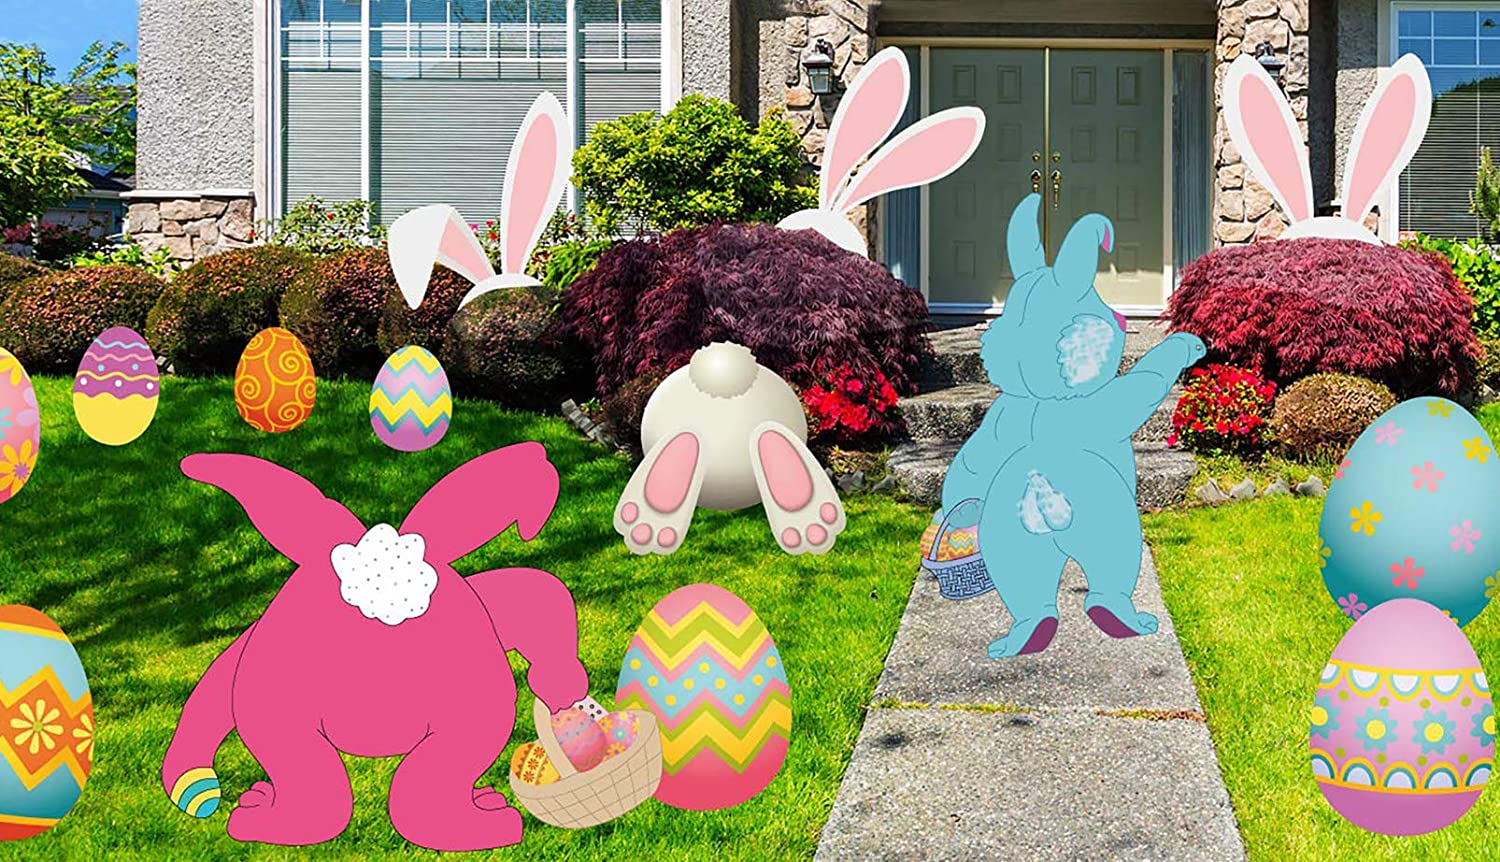 MISS FANTASY 24PCS Easter Yard Signs Decorations, Chick and Eggs Yard Stake Signs, Outdoor Easter Bunny Egg Yard Stakes Large Easter Lawn Yard Decor Sign for Easter Egg Hunt Spring Party